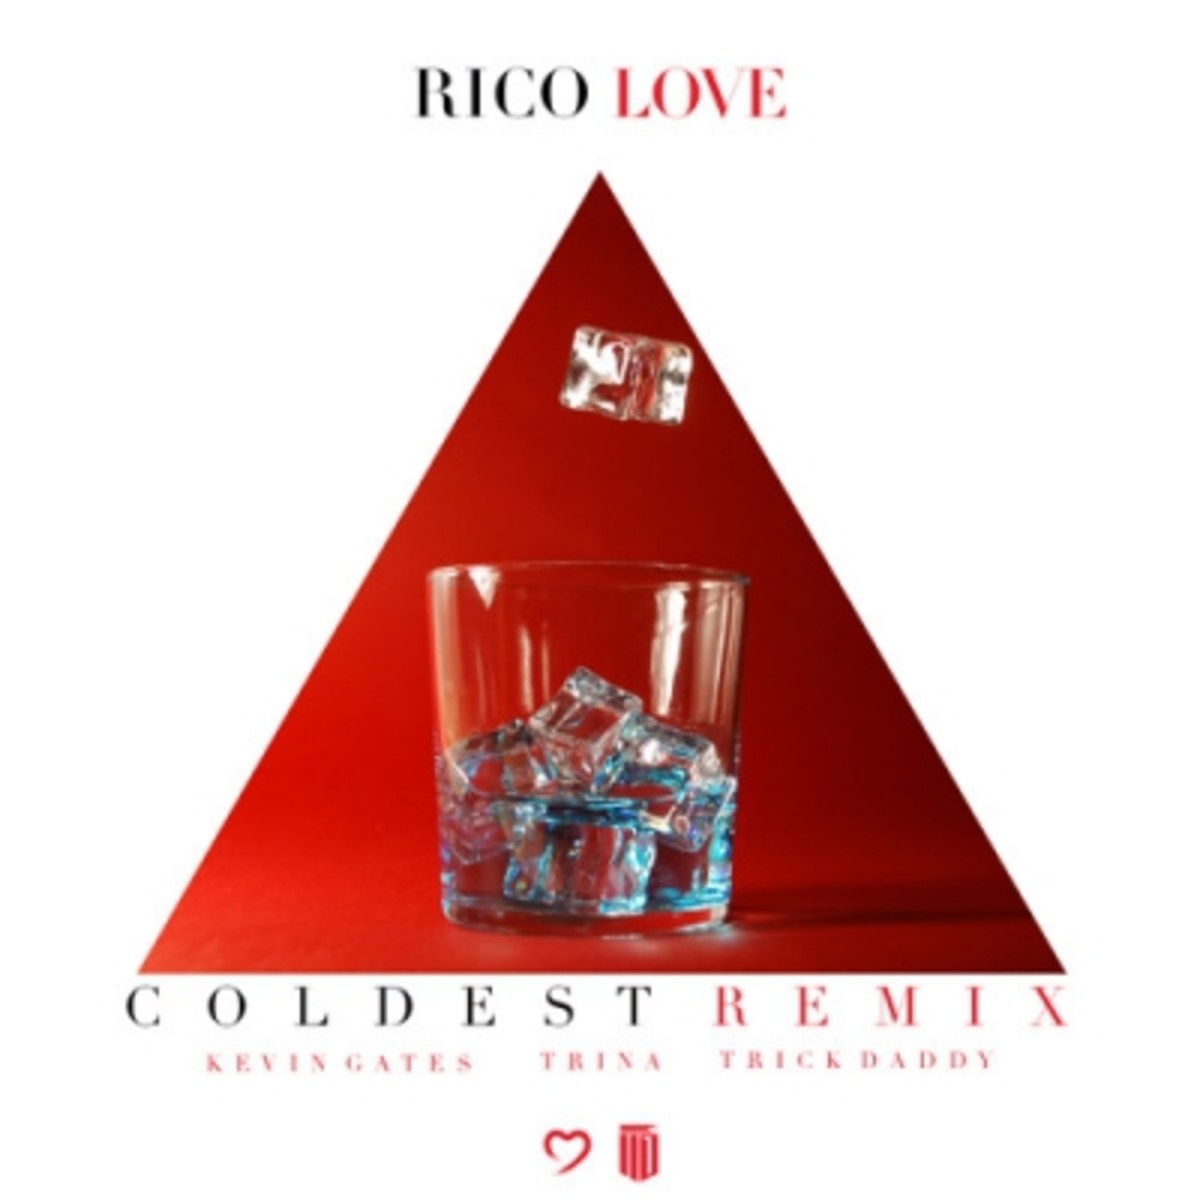 rico-love-coldest-remix.jpg